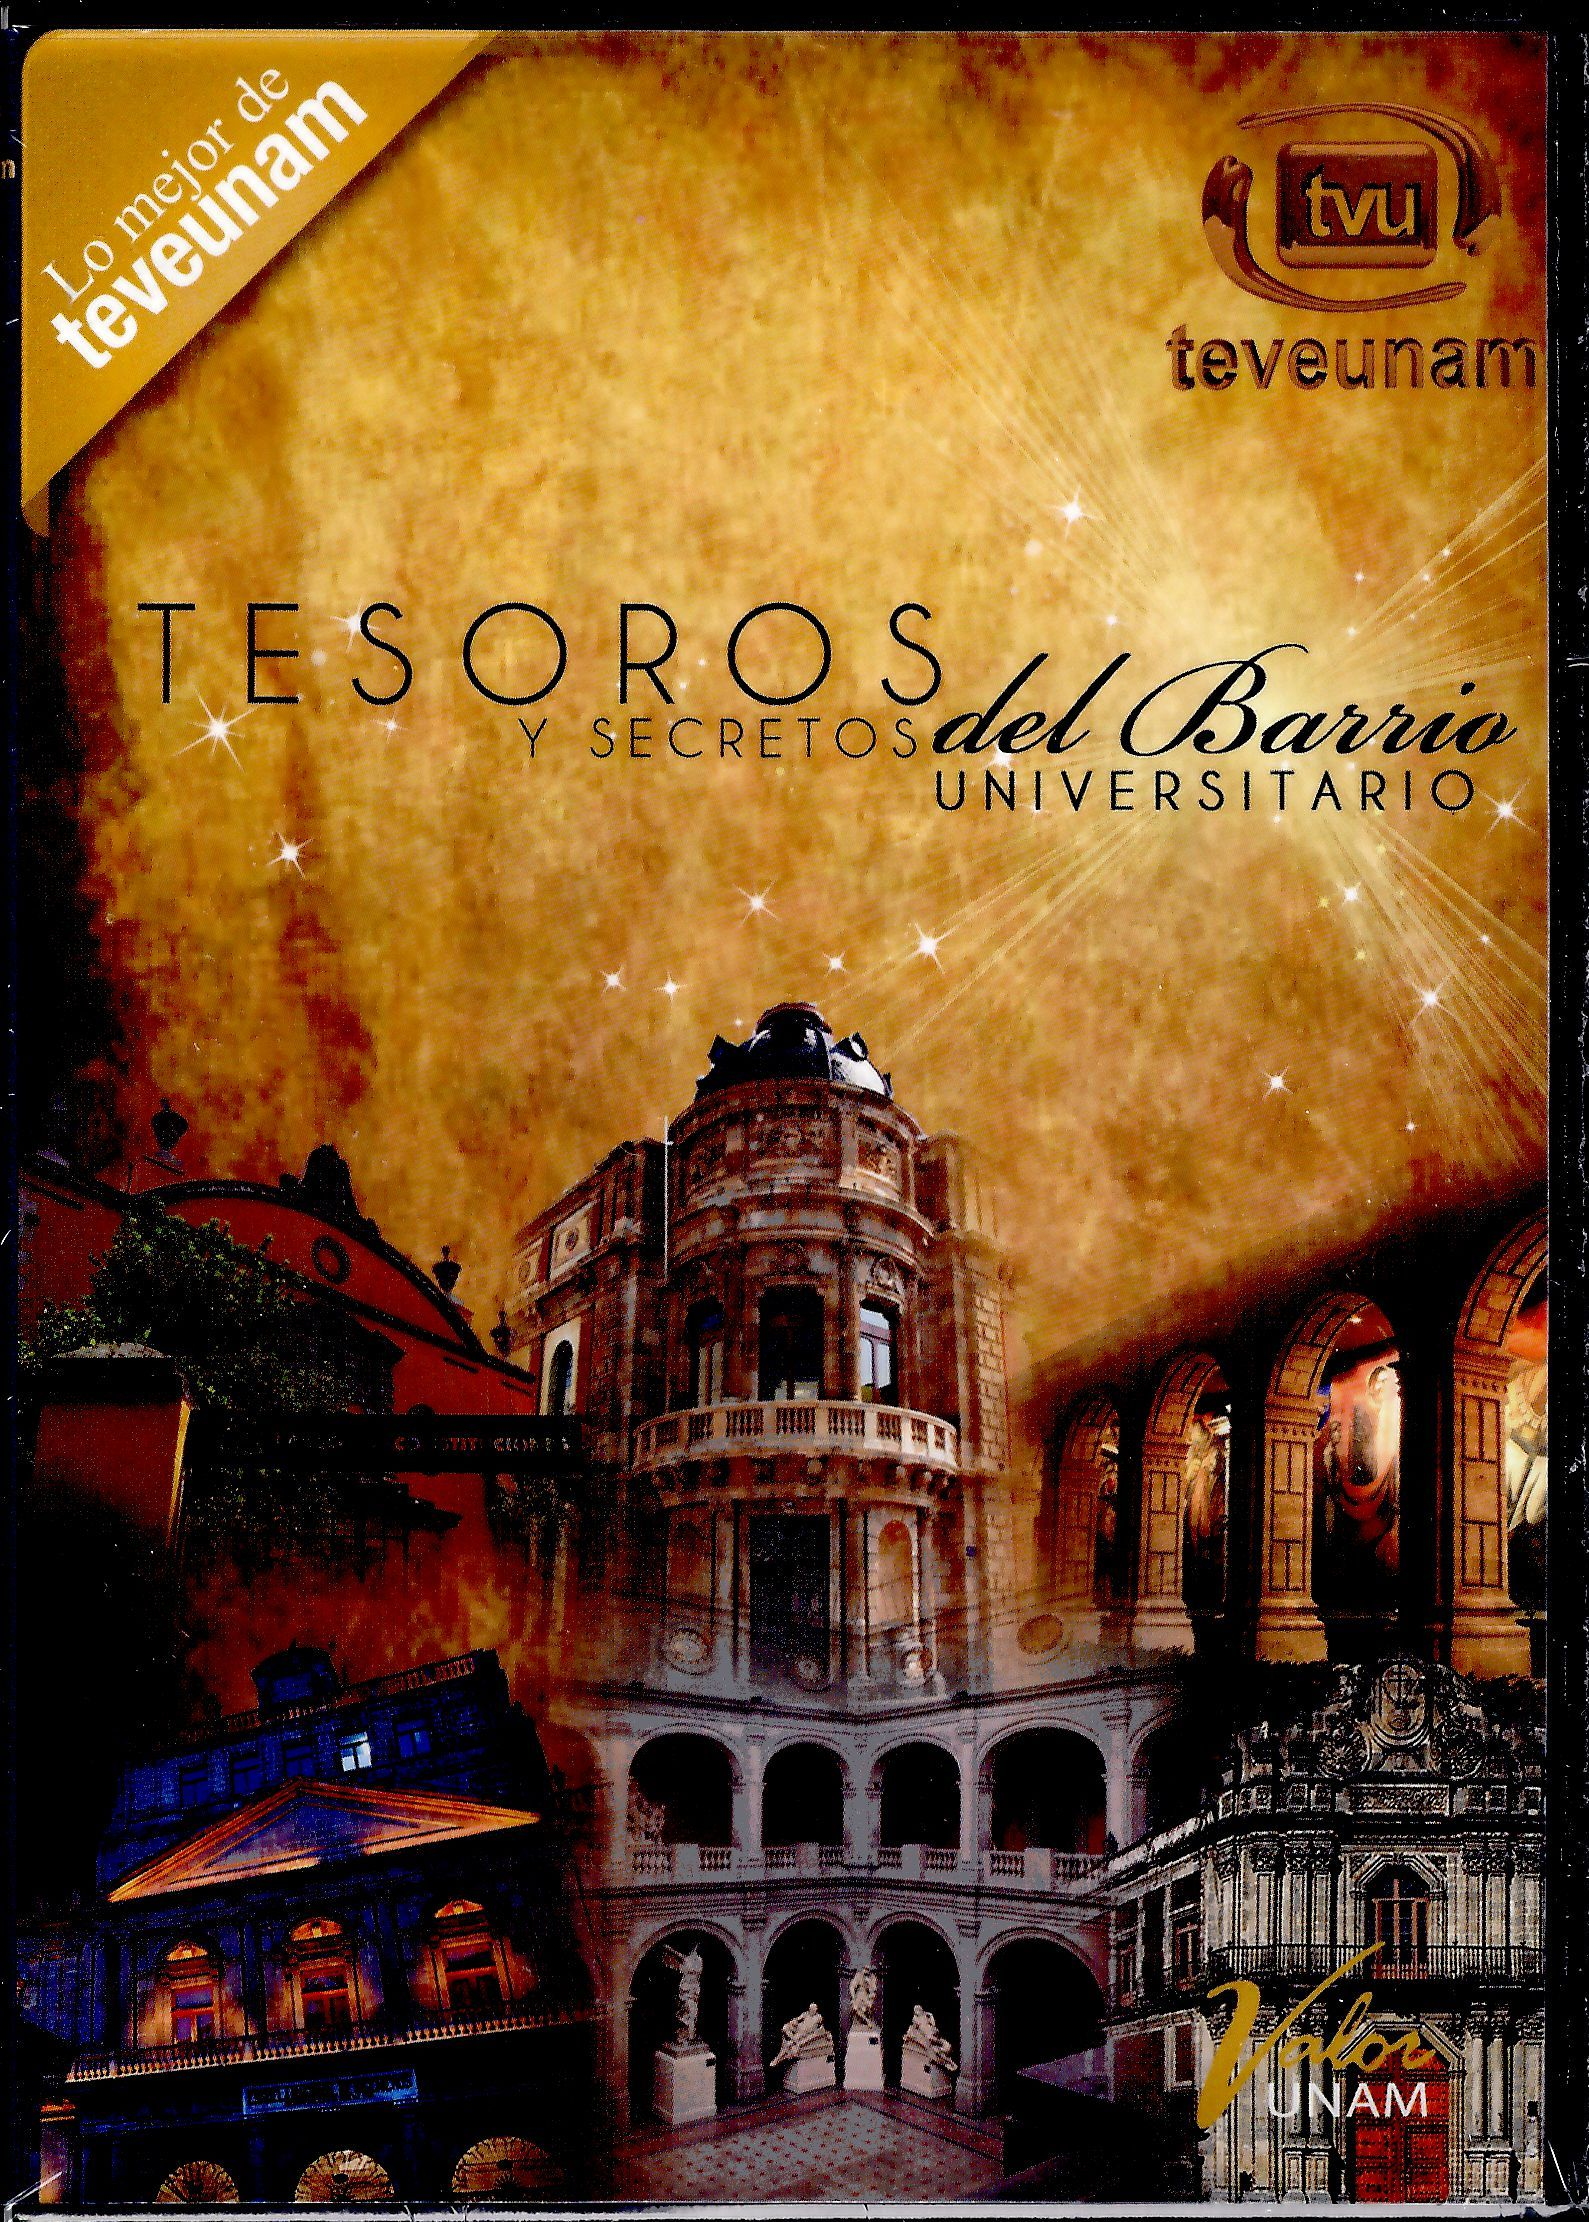 Tesoros y secretos del barrio universitario